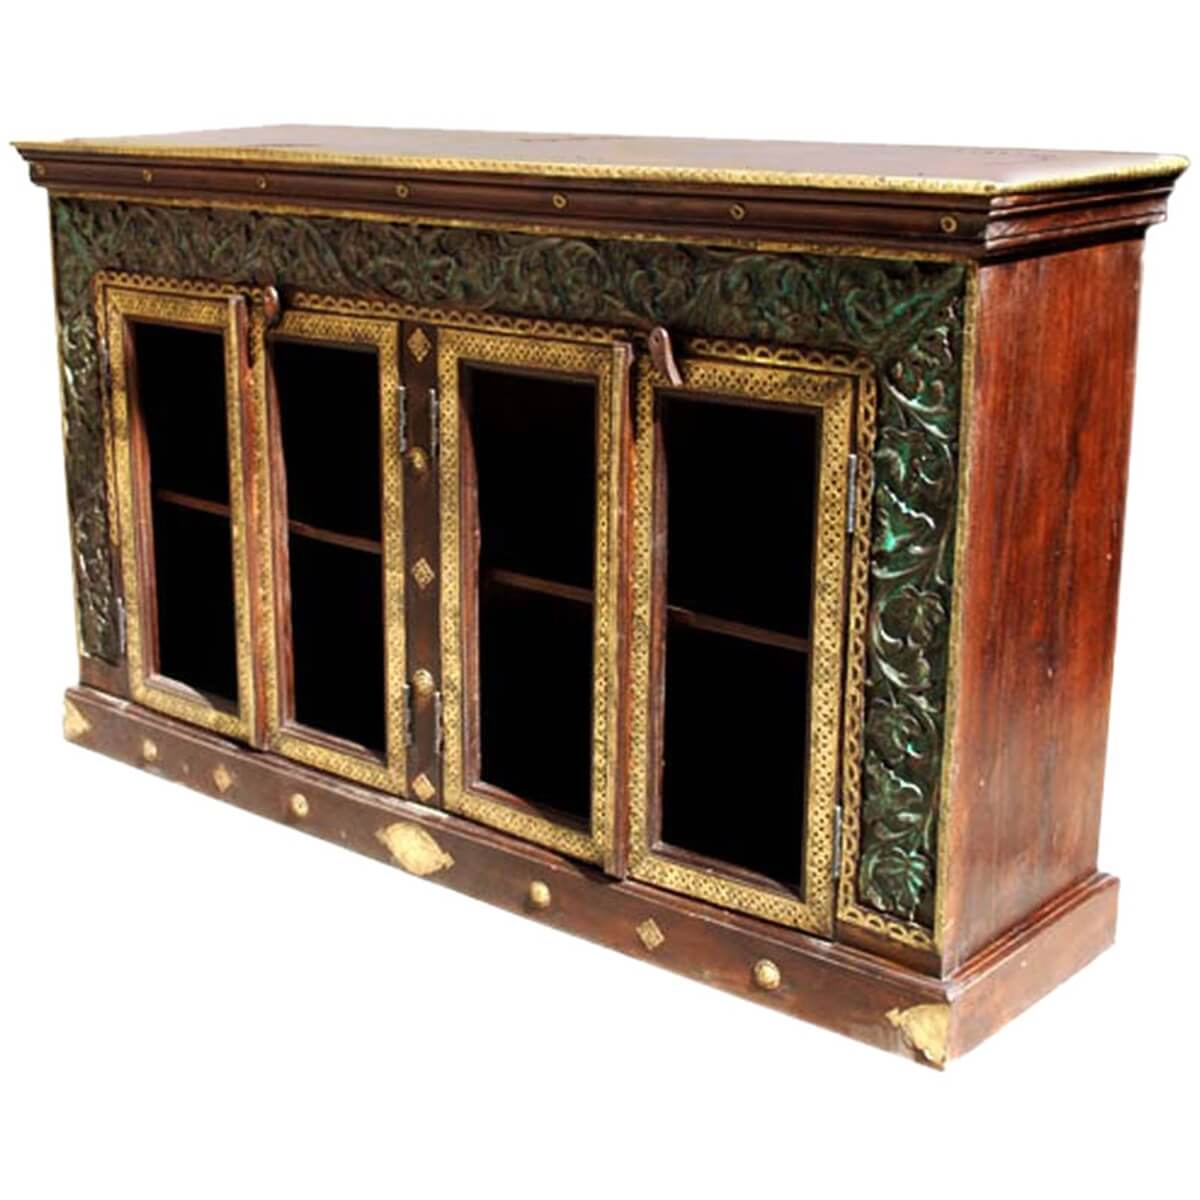 Heritage Carved Vineland Brass Inlaid Sideboard Buffet